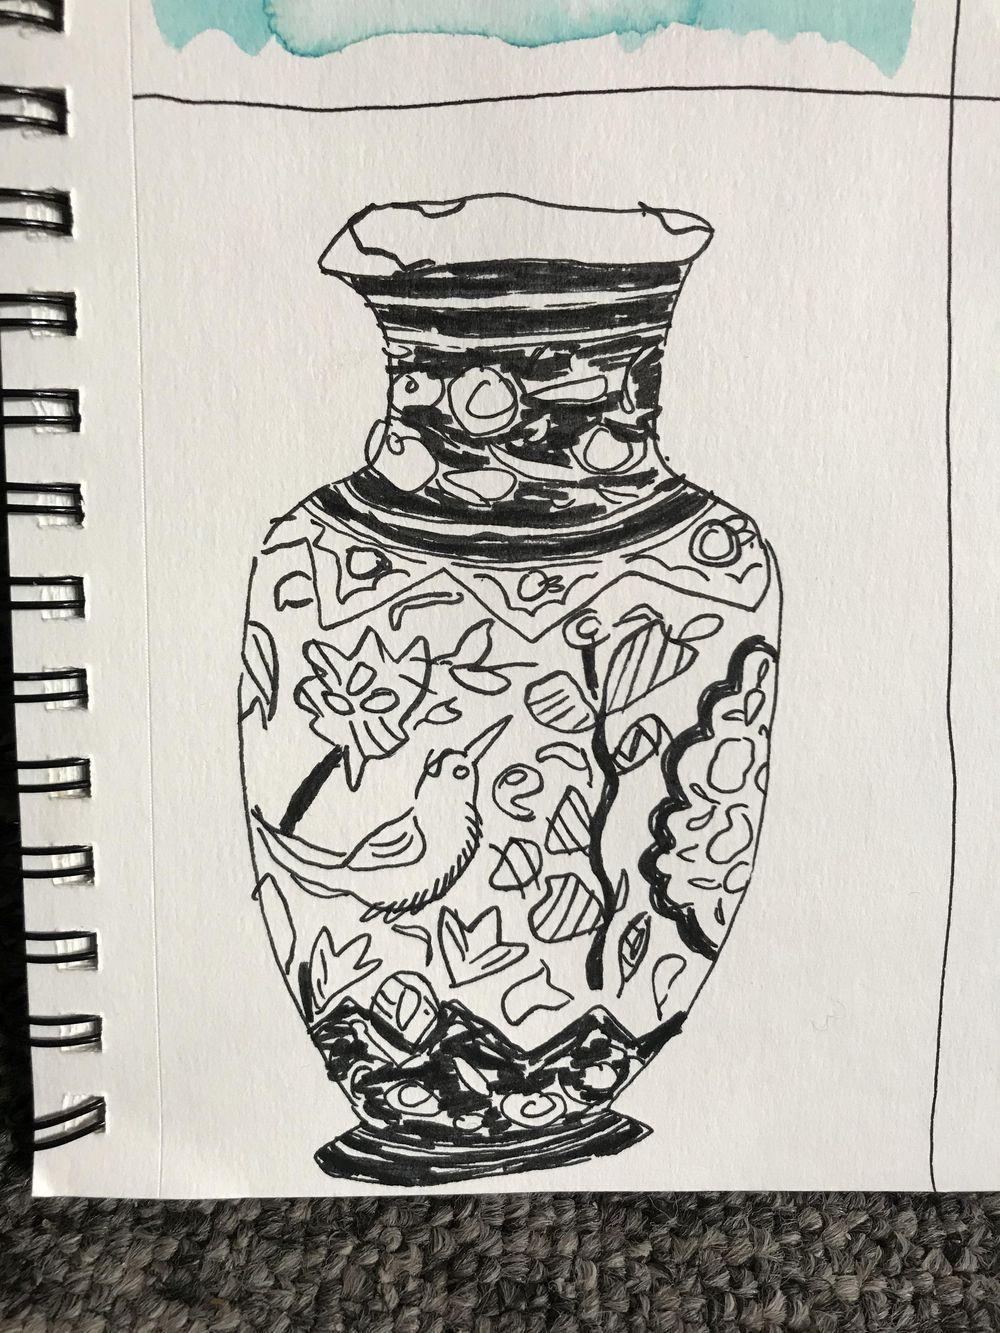 Sketchbook Magic class - image 4 - student project